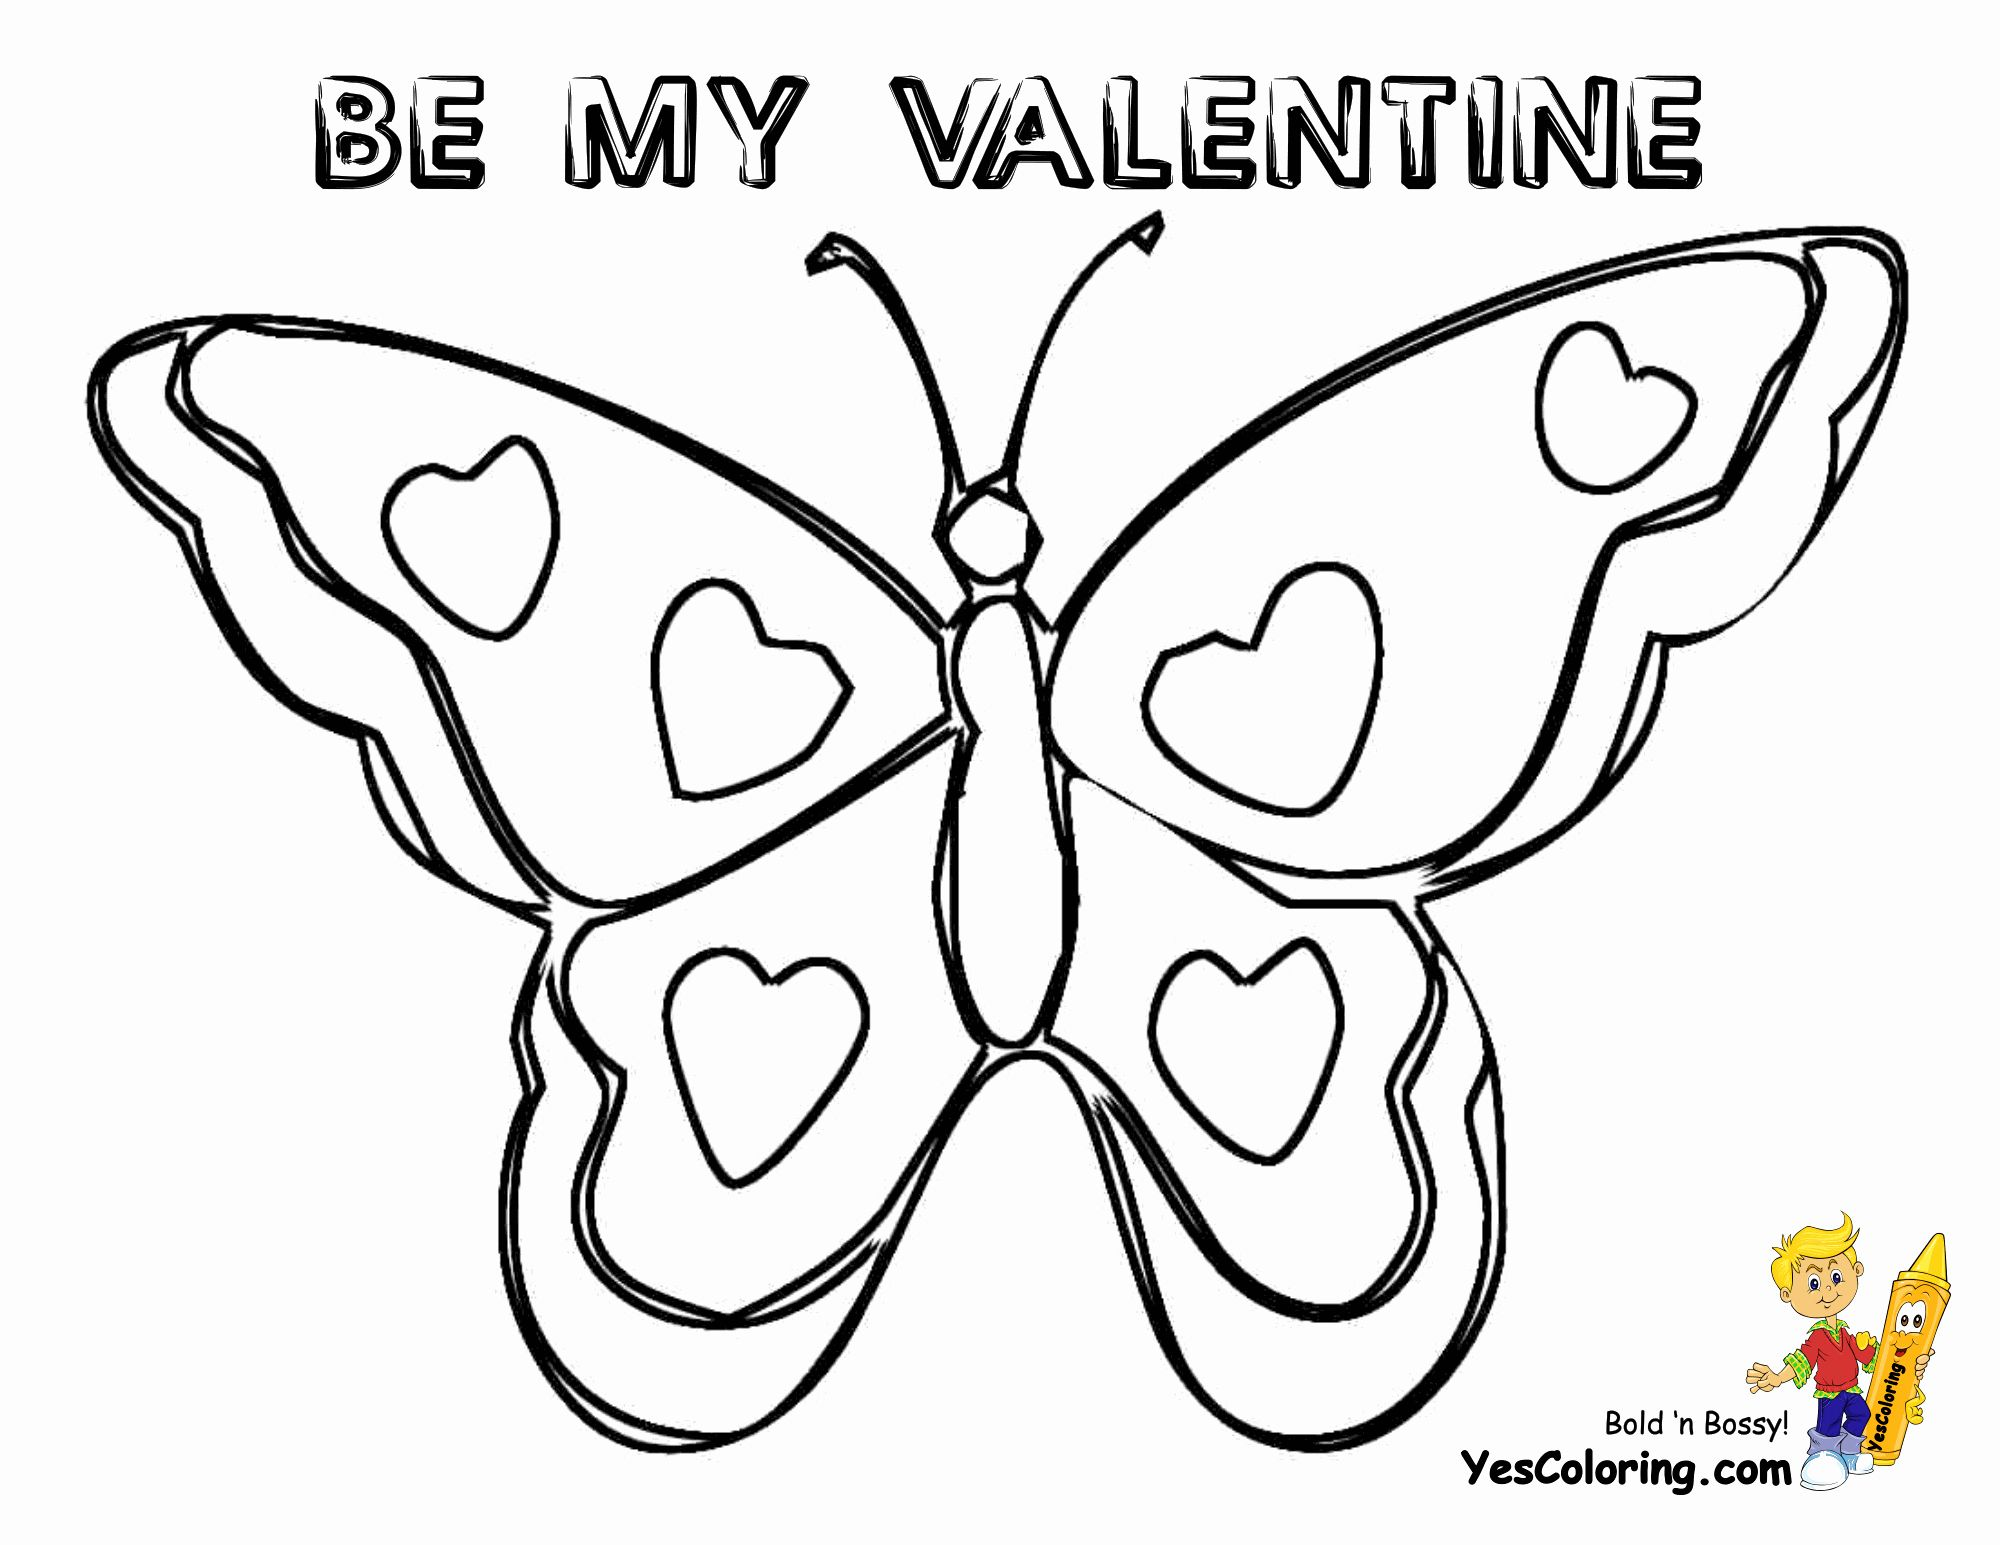 Be My Valentine Coloring Pages Best Of Fancy Flowers Valentines Coloring Pages Butterfly Coloring Page Printable Valentines Coloring Pages Valentine Coloring